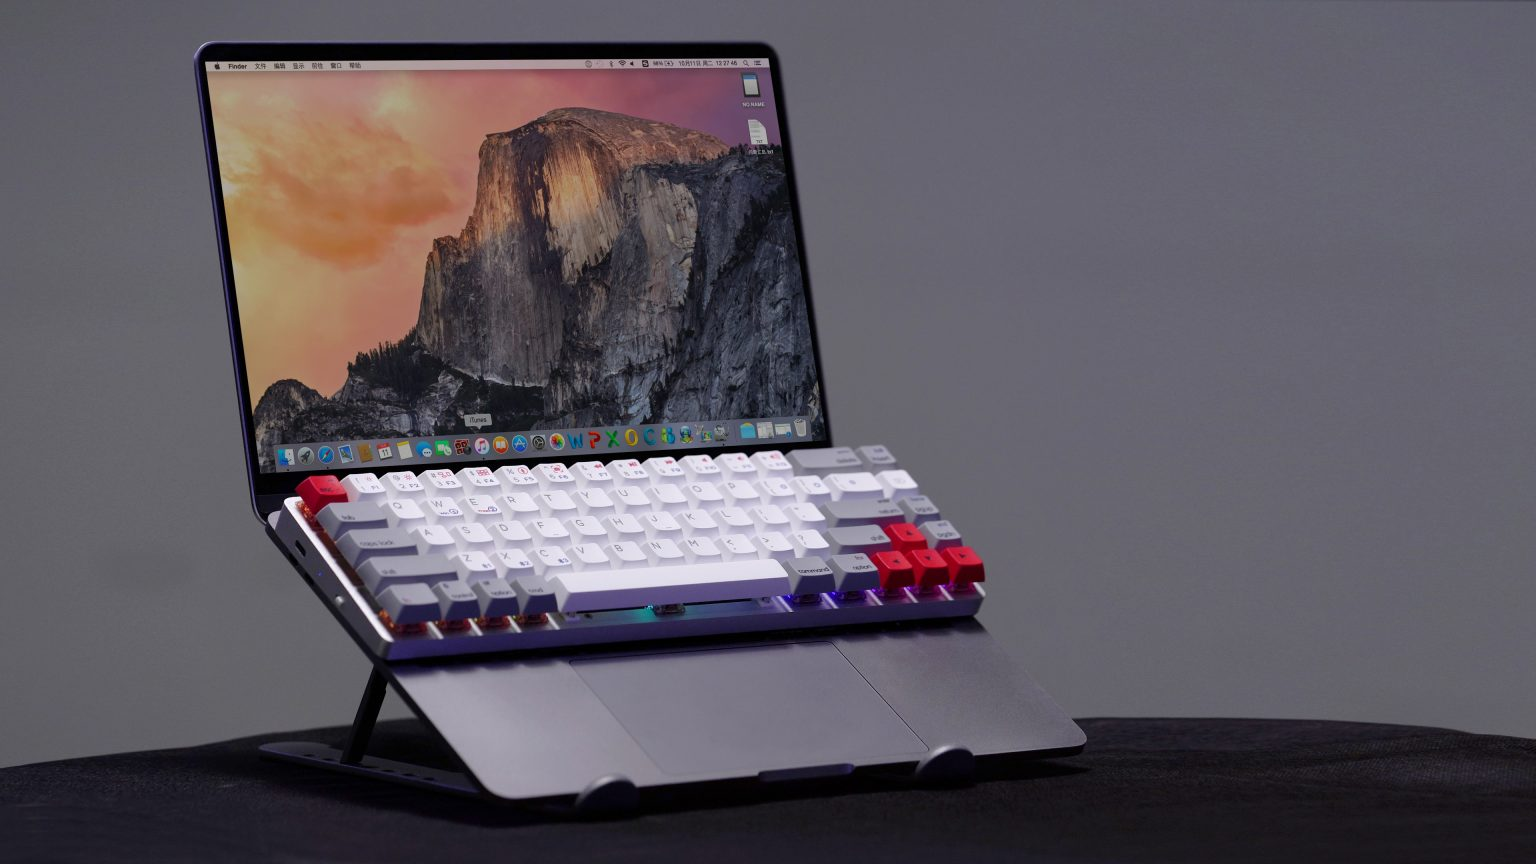 You can place the Epomaker NT68 right on your Apple laptop.